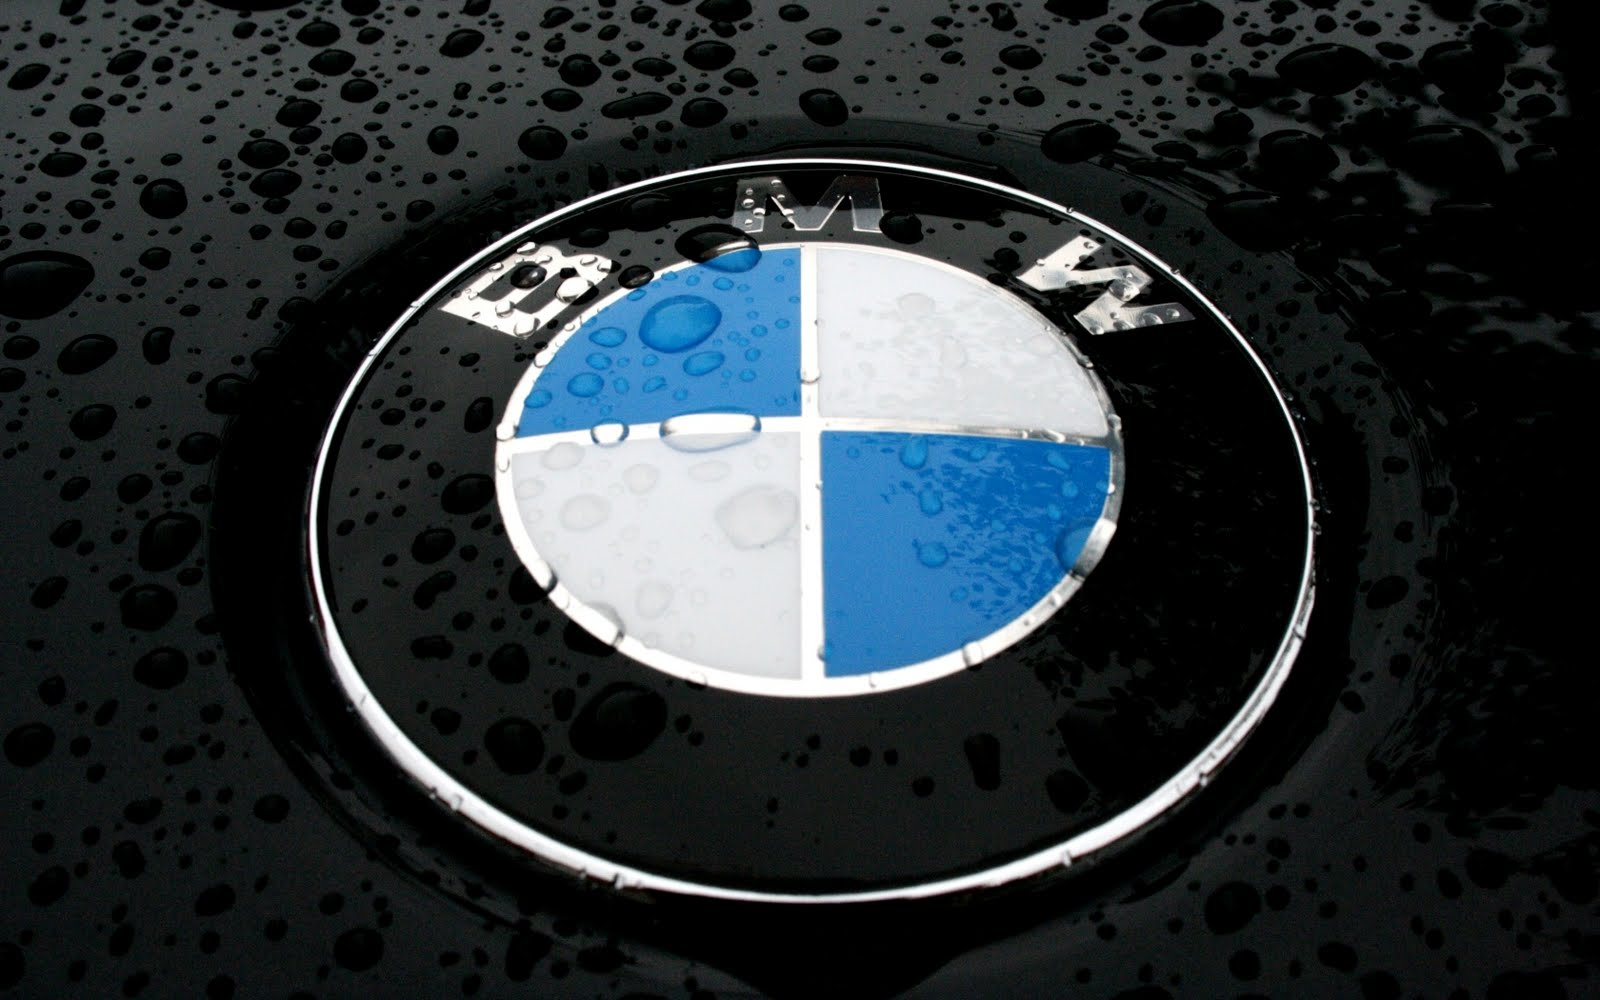 http://3.bp.blogspot.com/-R48UOOtiob8/T8g3F49RyZI/AAAAAAAAA5c/IudTUWf0_Uc/s1600/Bmw+badge+logo+hd+widescreen+wallpaper.jpg